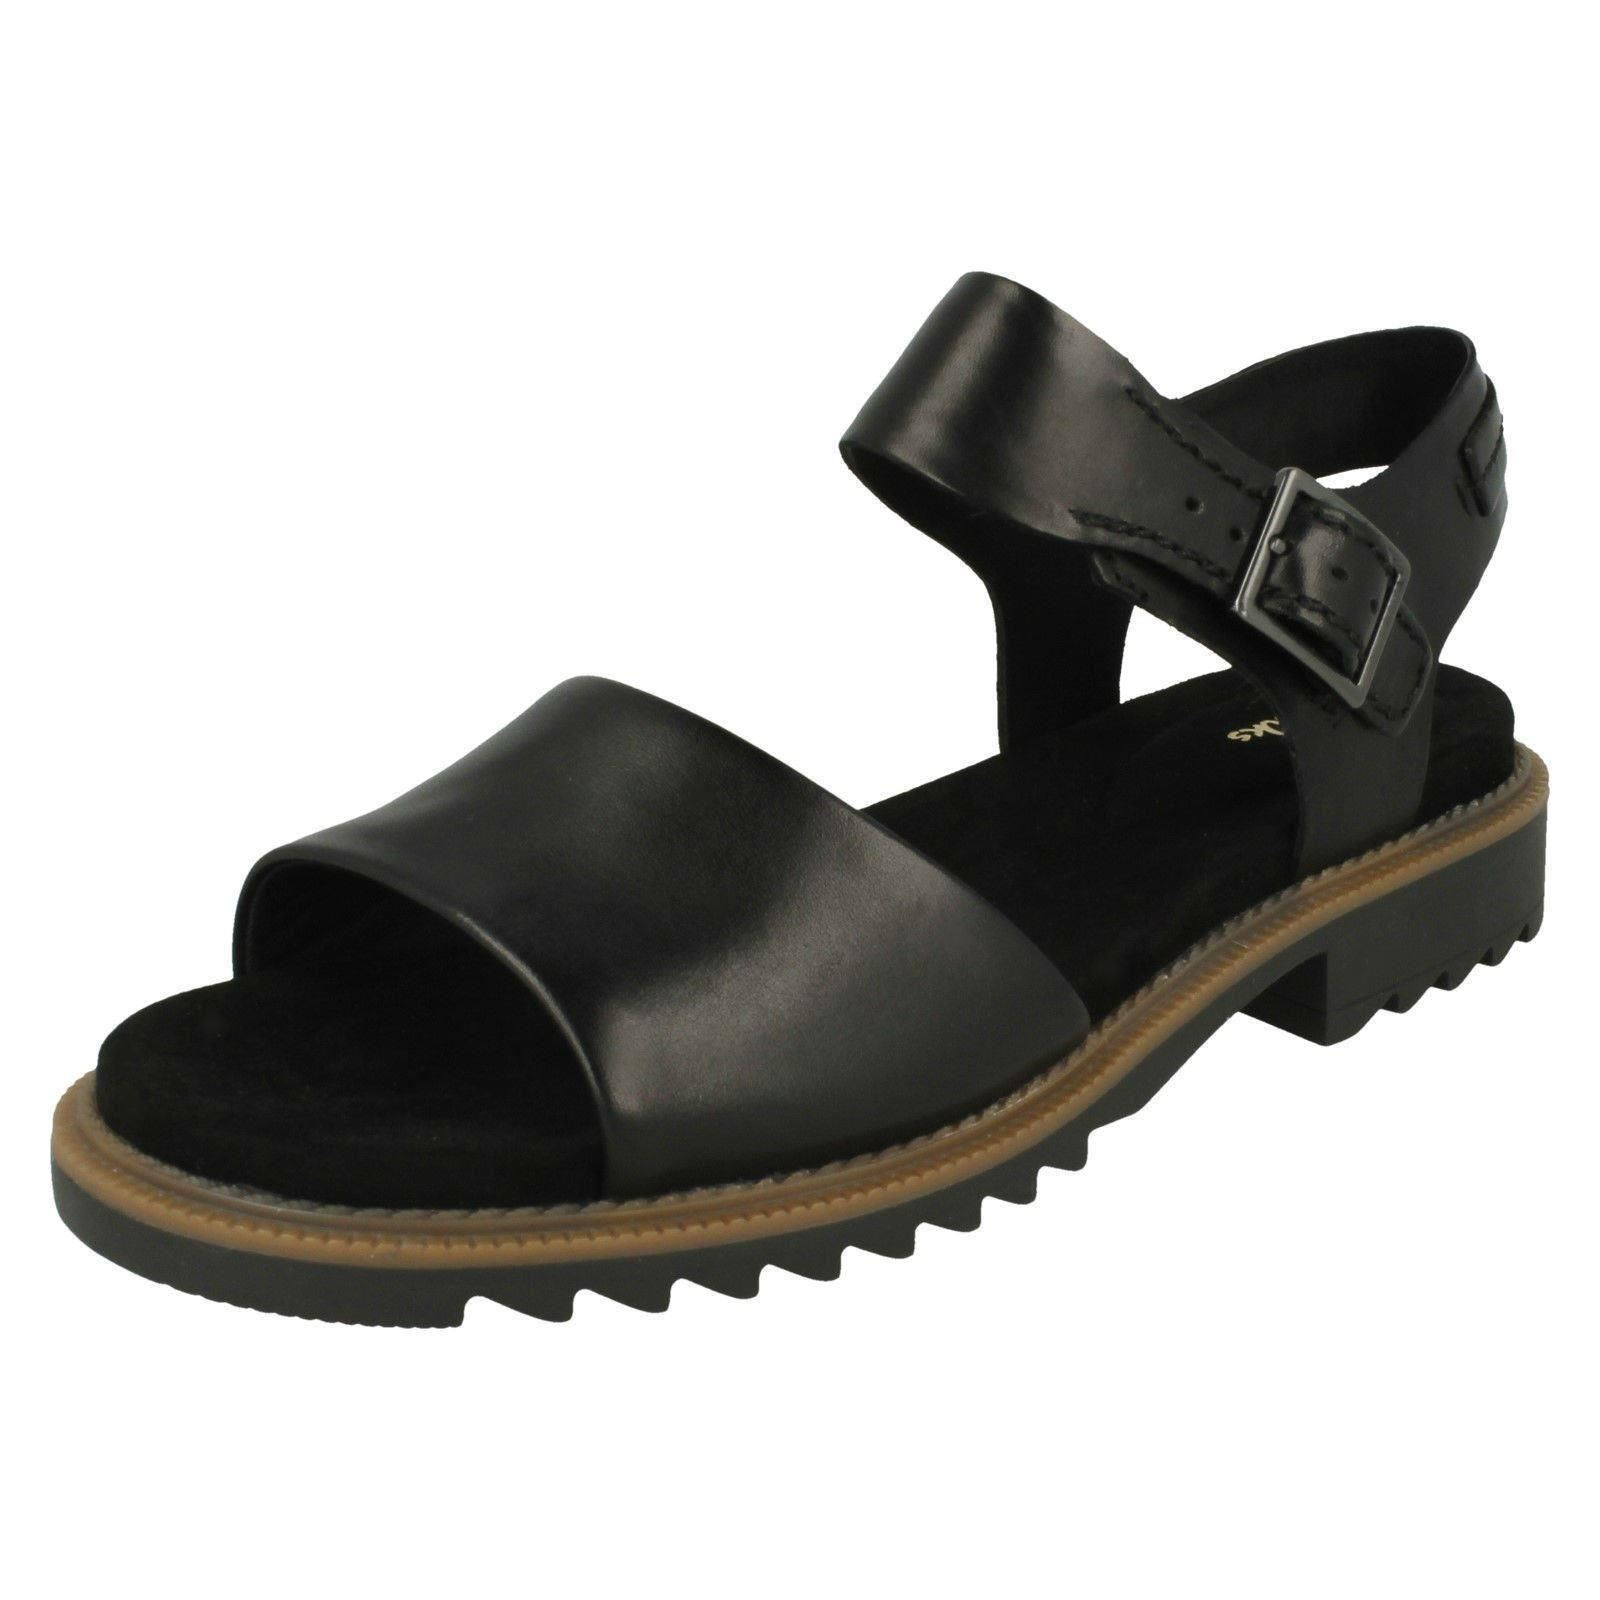 Ladies Clarks Casual Open Toe Buckled Leather Sandals Ferni Fame